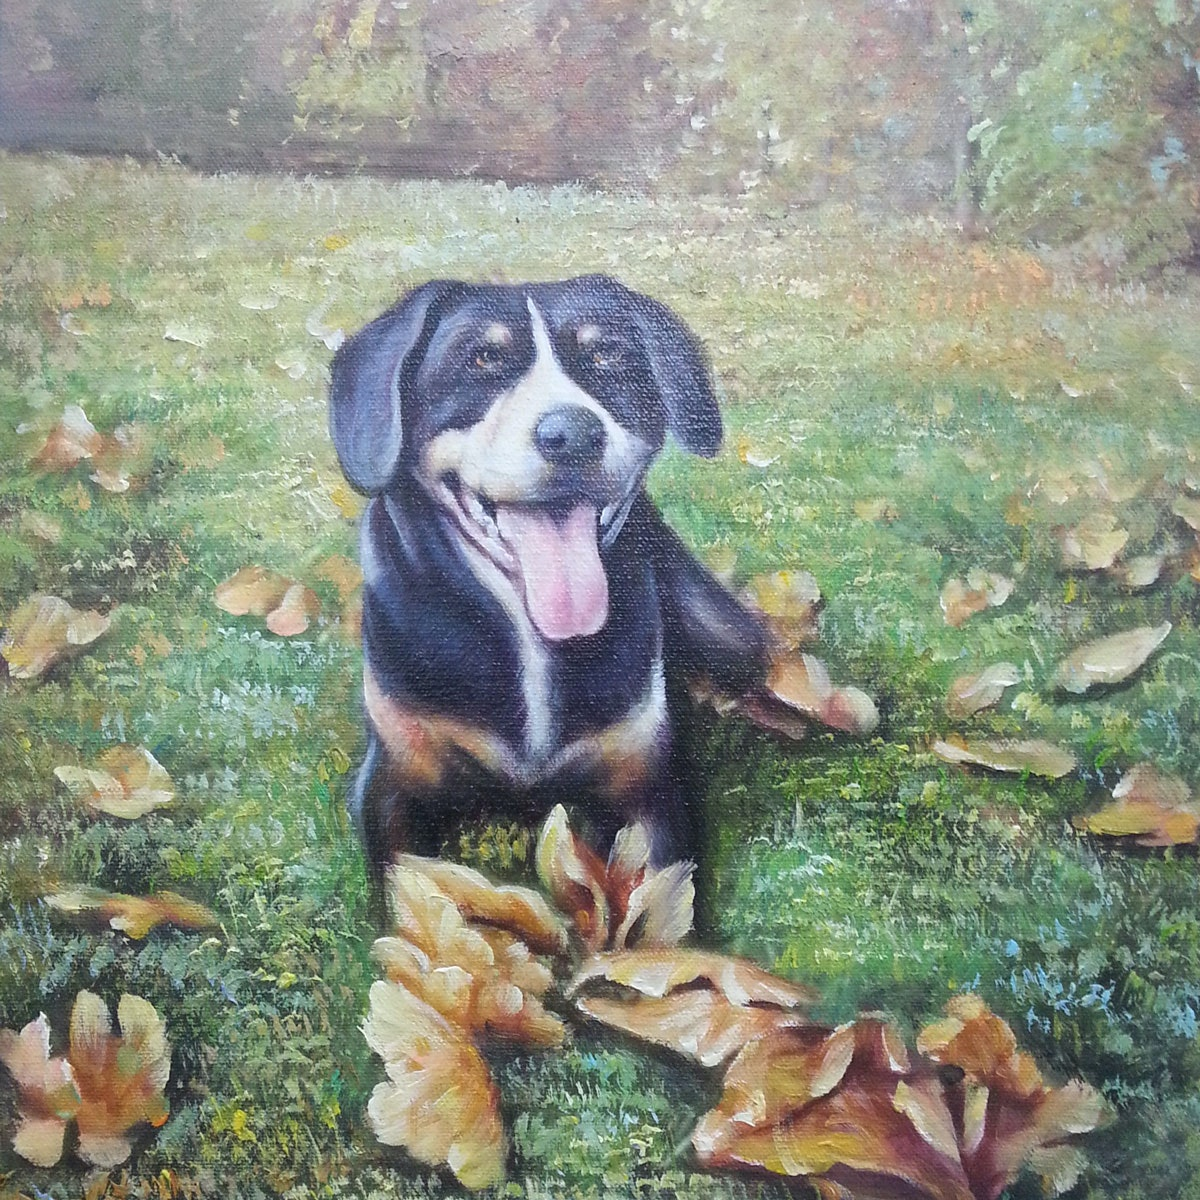 Custom Dog Sitting on Grass Mixed-Media Portrait Oil Painting